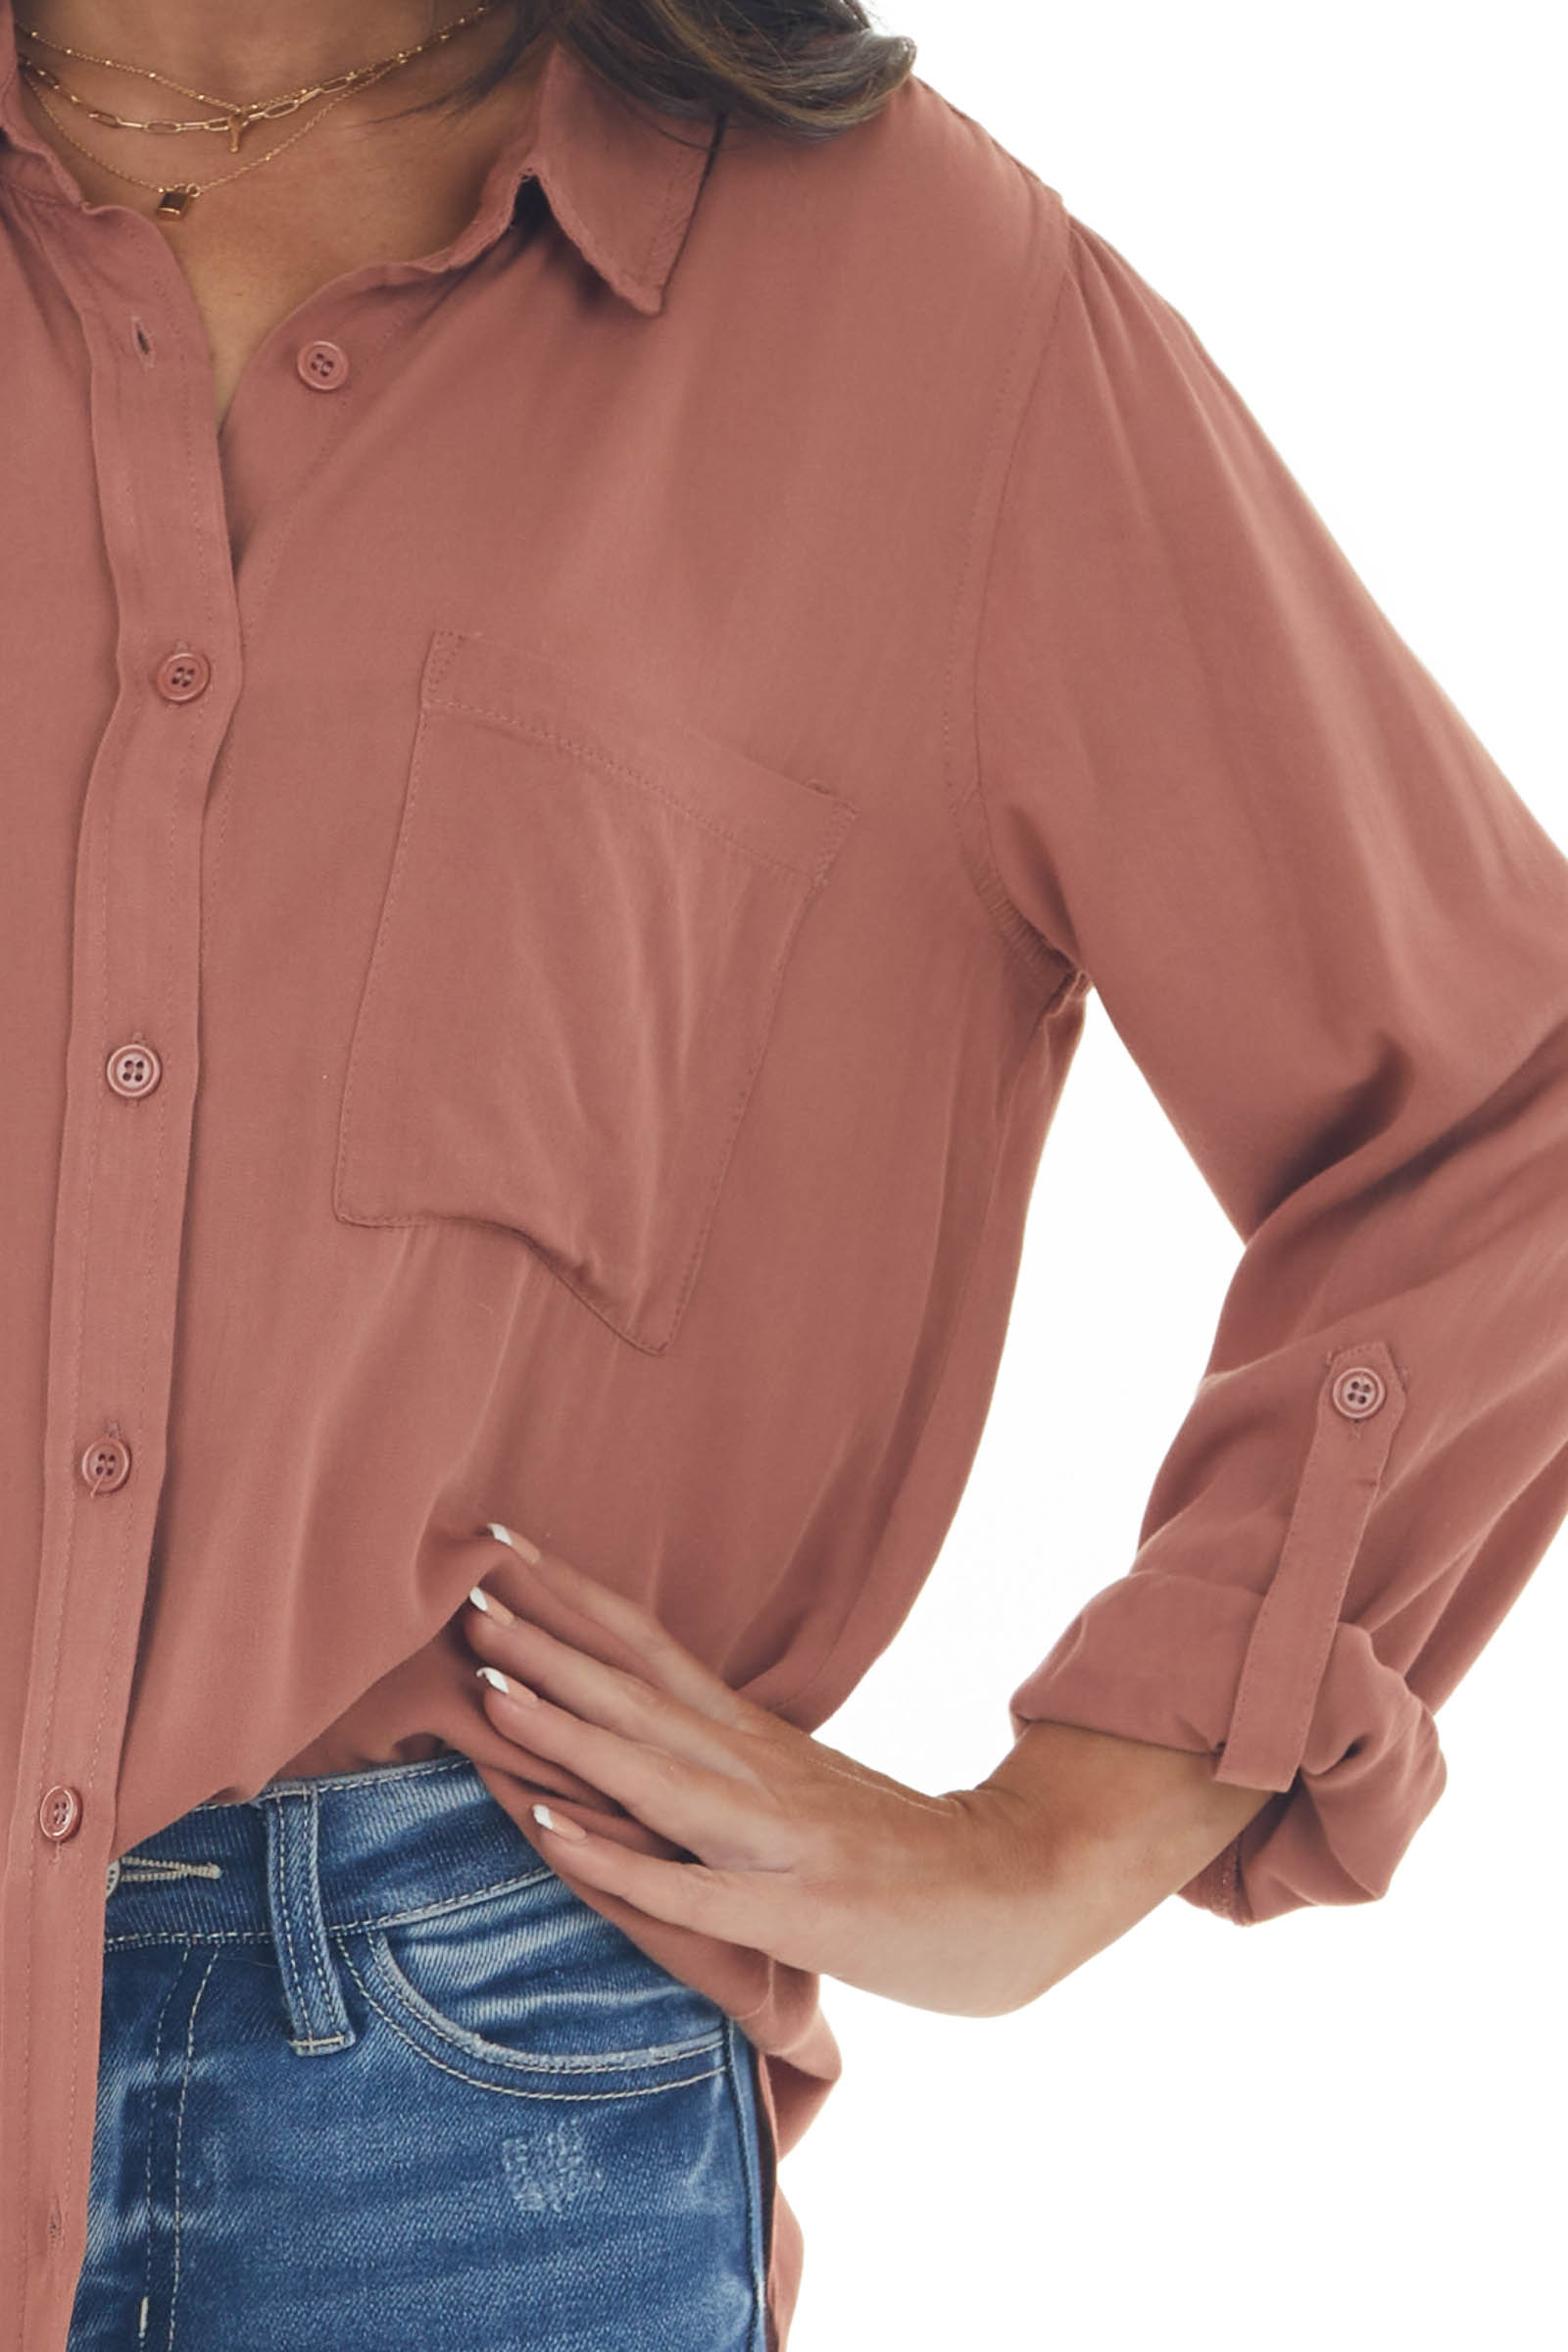 Ginger Button Down Chest Pocket Collared Shirt